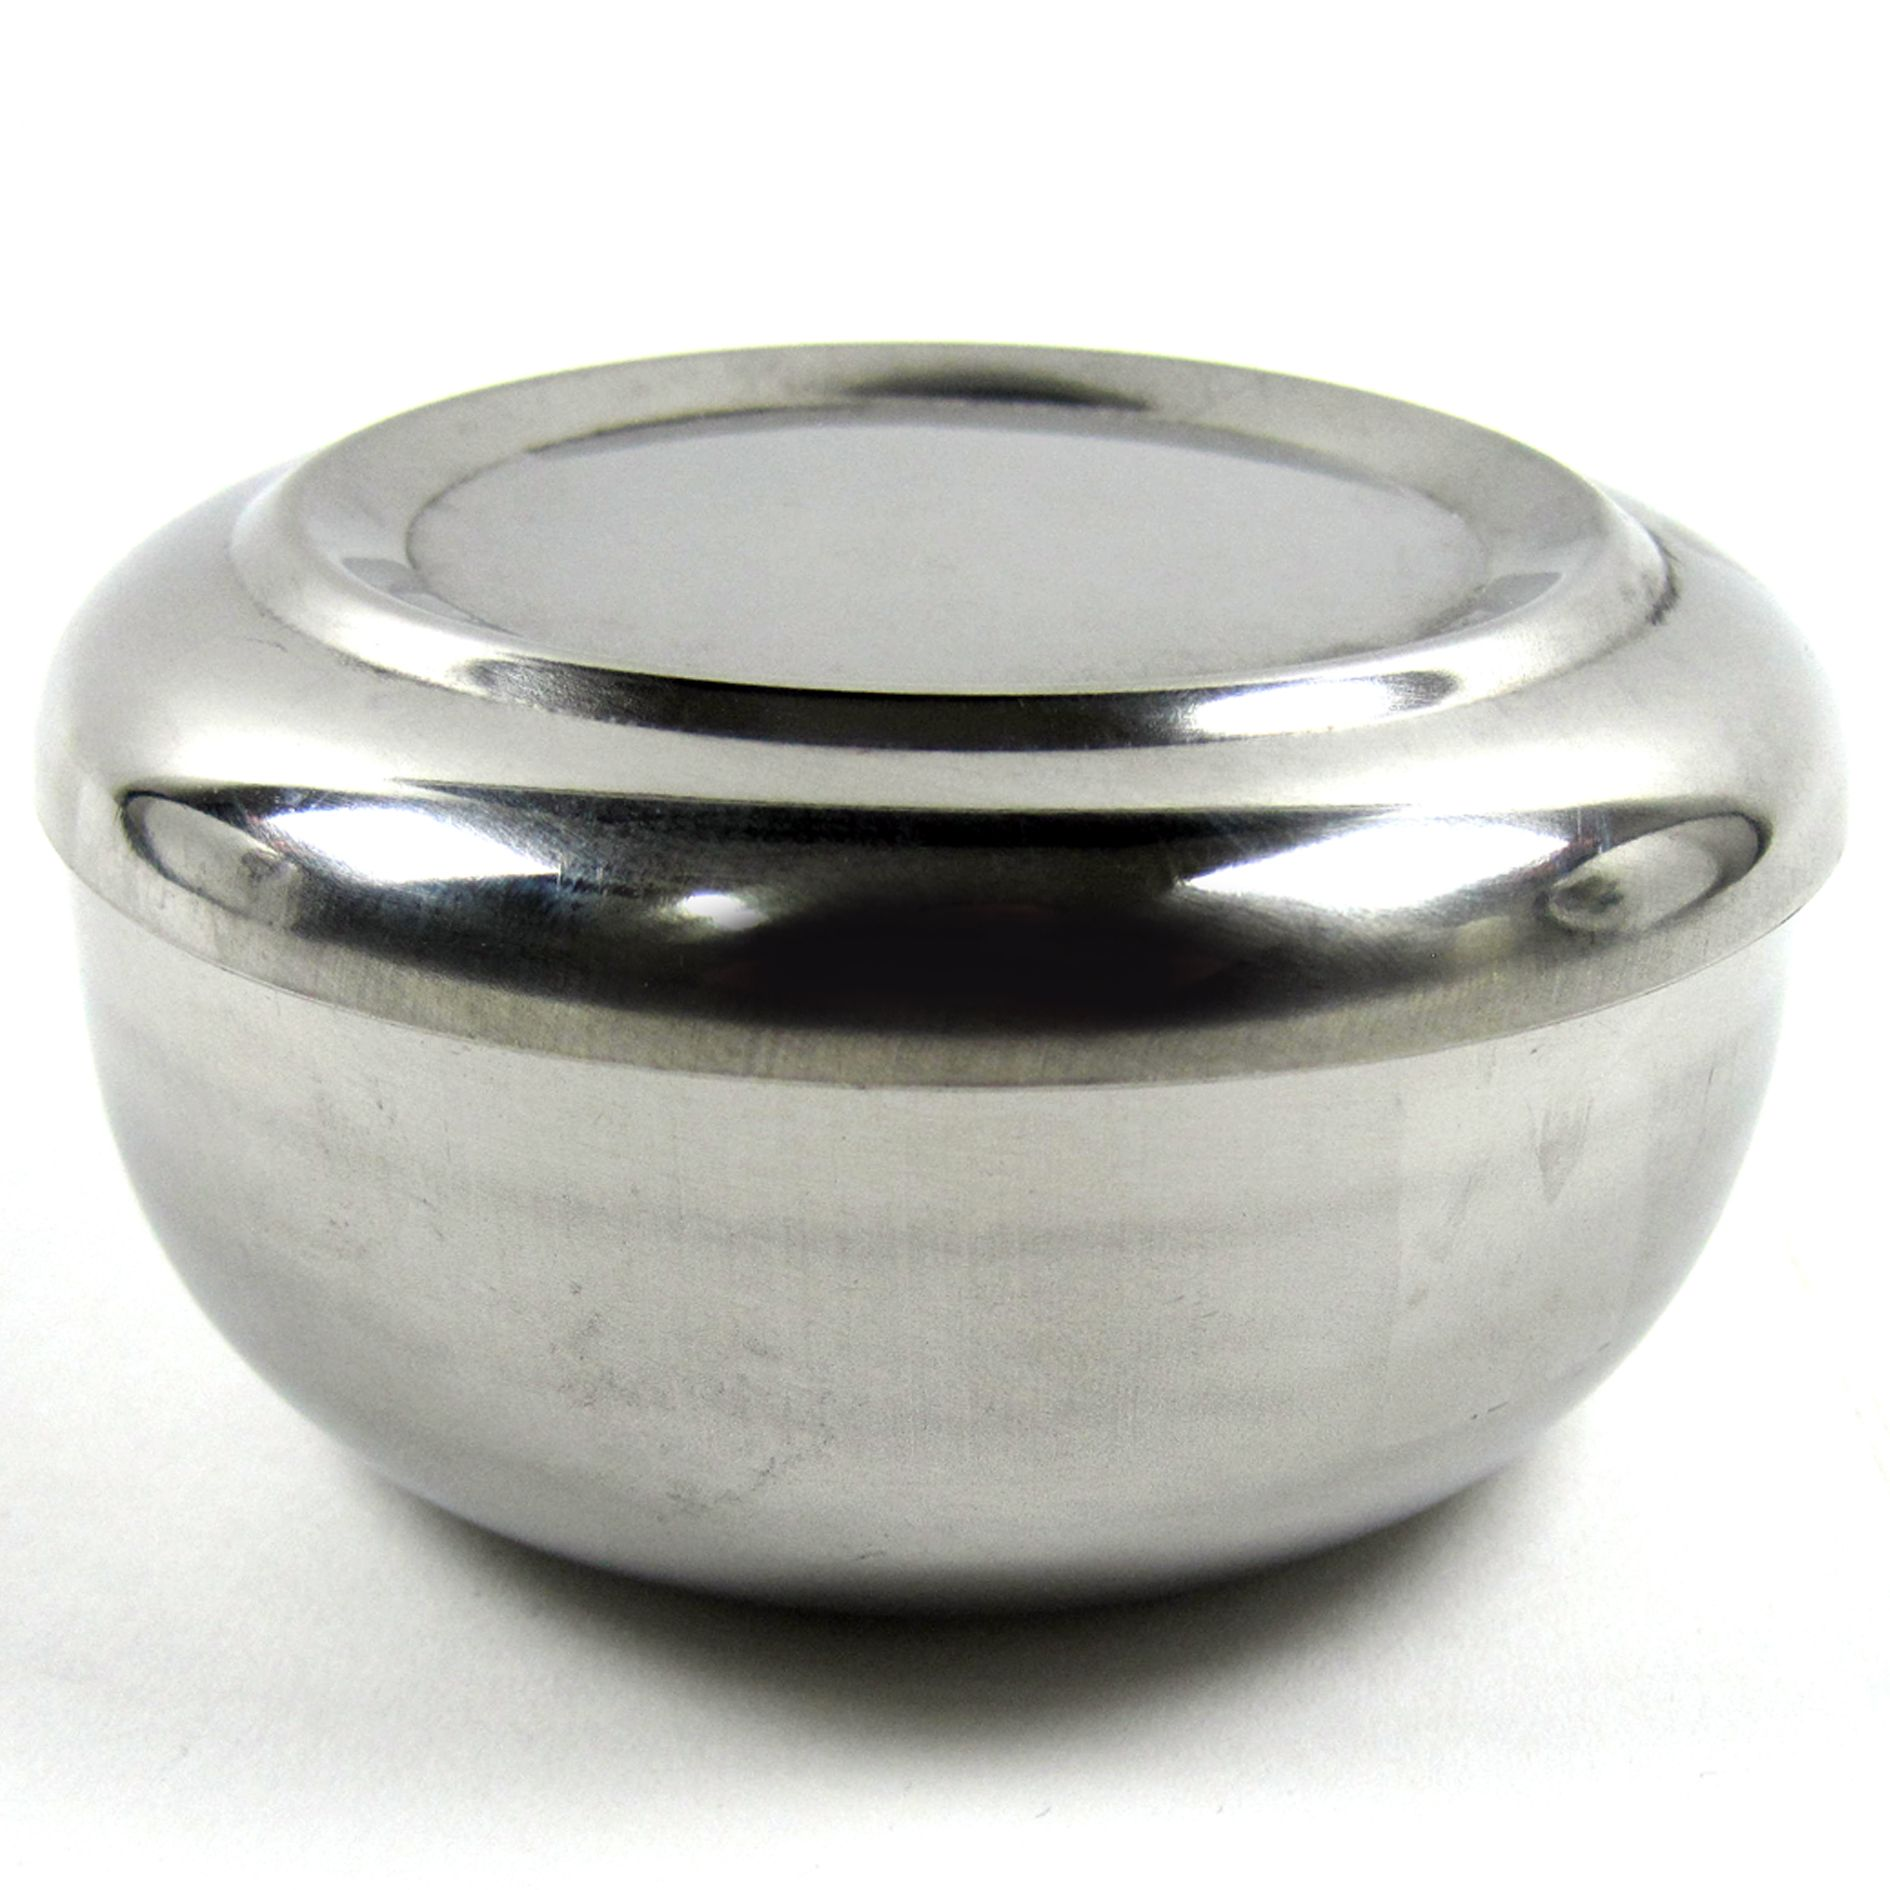 Korean Style Stainless Steel Rice Bowl With Cover